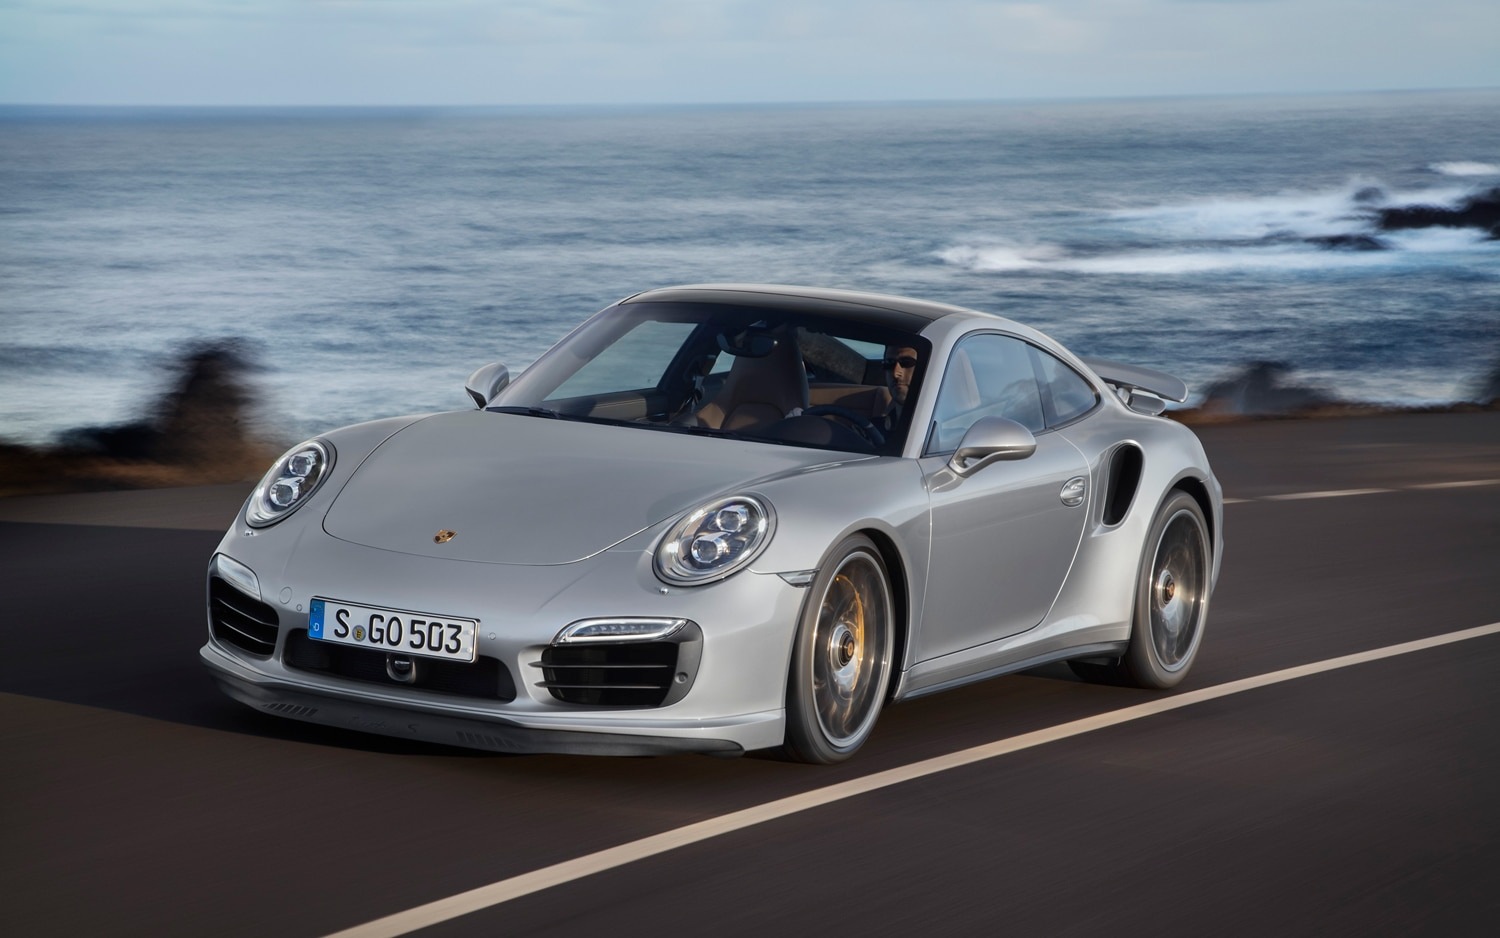 2014 porsche 911 turbo s front three quarters in motion 21 - 911 Porsche 2014 Price